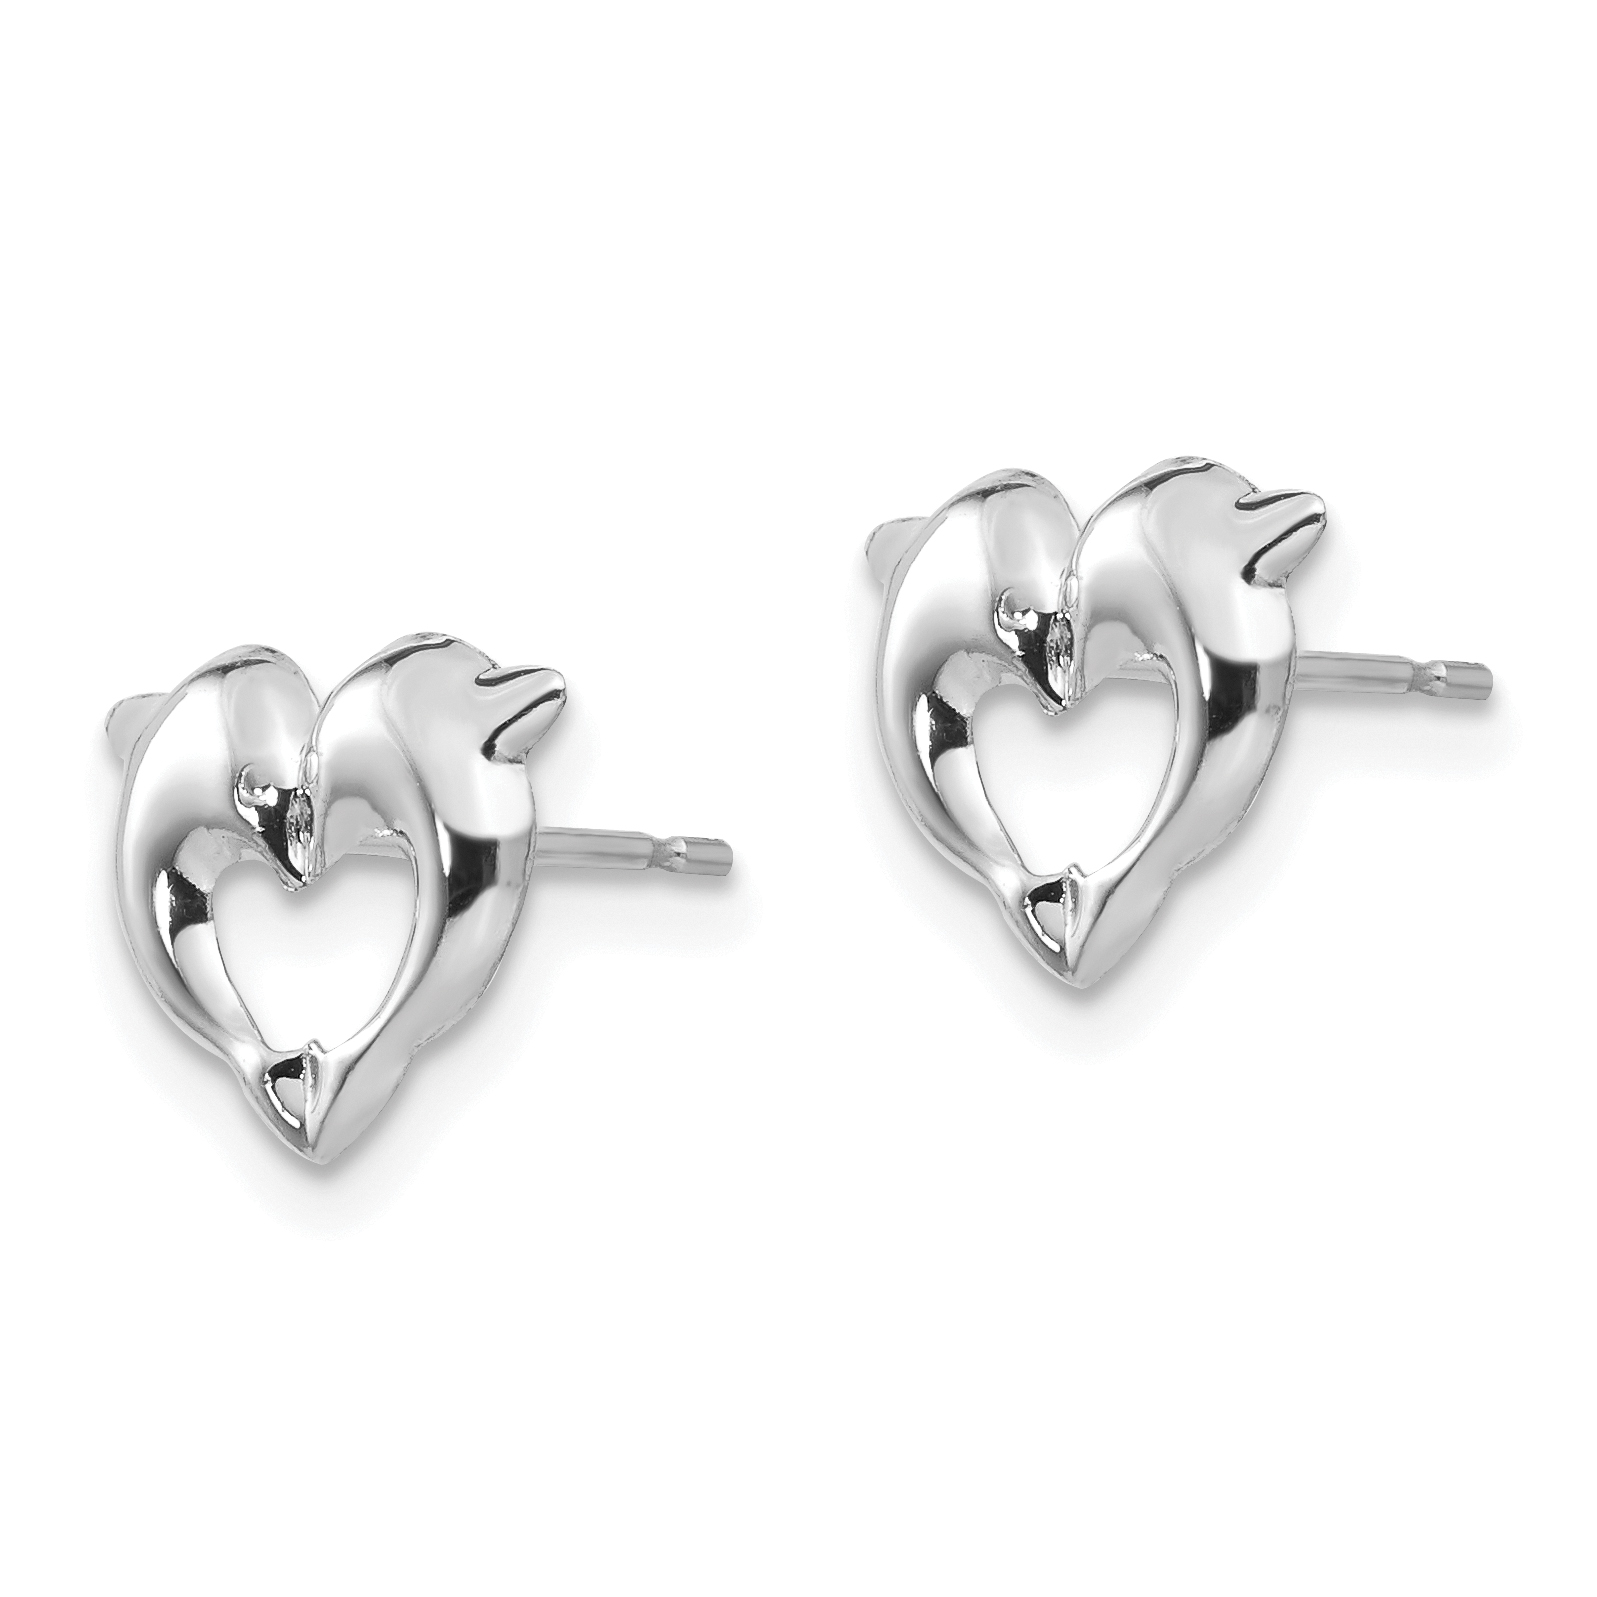 14k White Gold Screwback Dolphins Post Stud Earrings Animal Sea Life Fine Jewelry Gifts For Women For Her - image 2 of 3